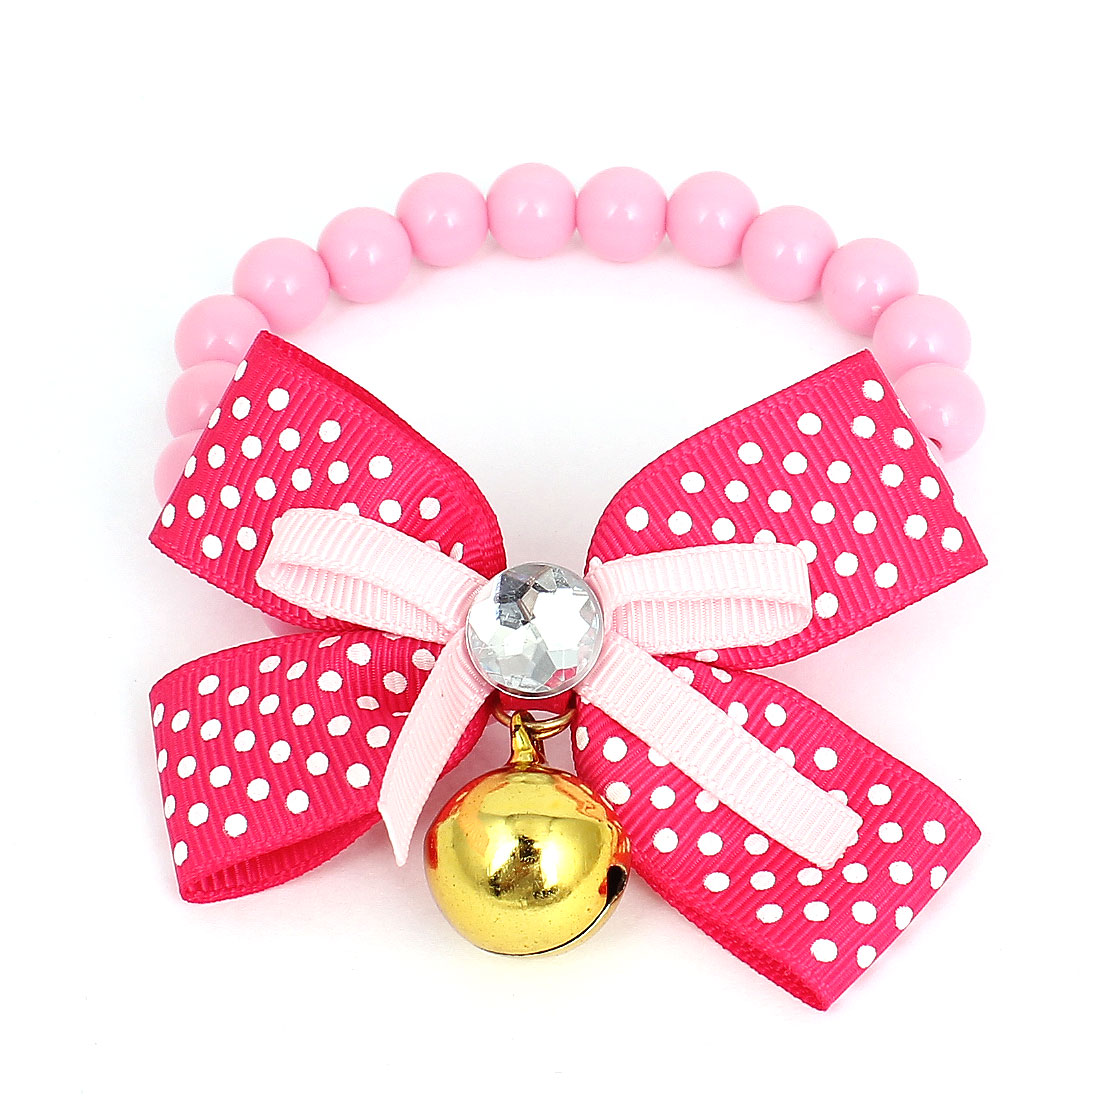 Bowtie Decor Bell Pendant Pet Dog Imitation Pearl Linked Collar Necklace Pink Size XS